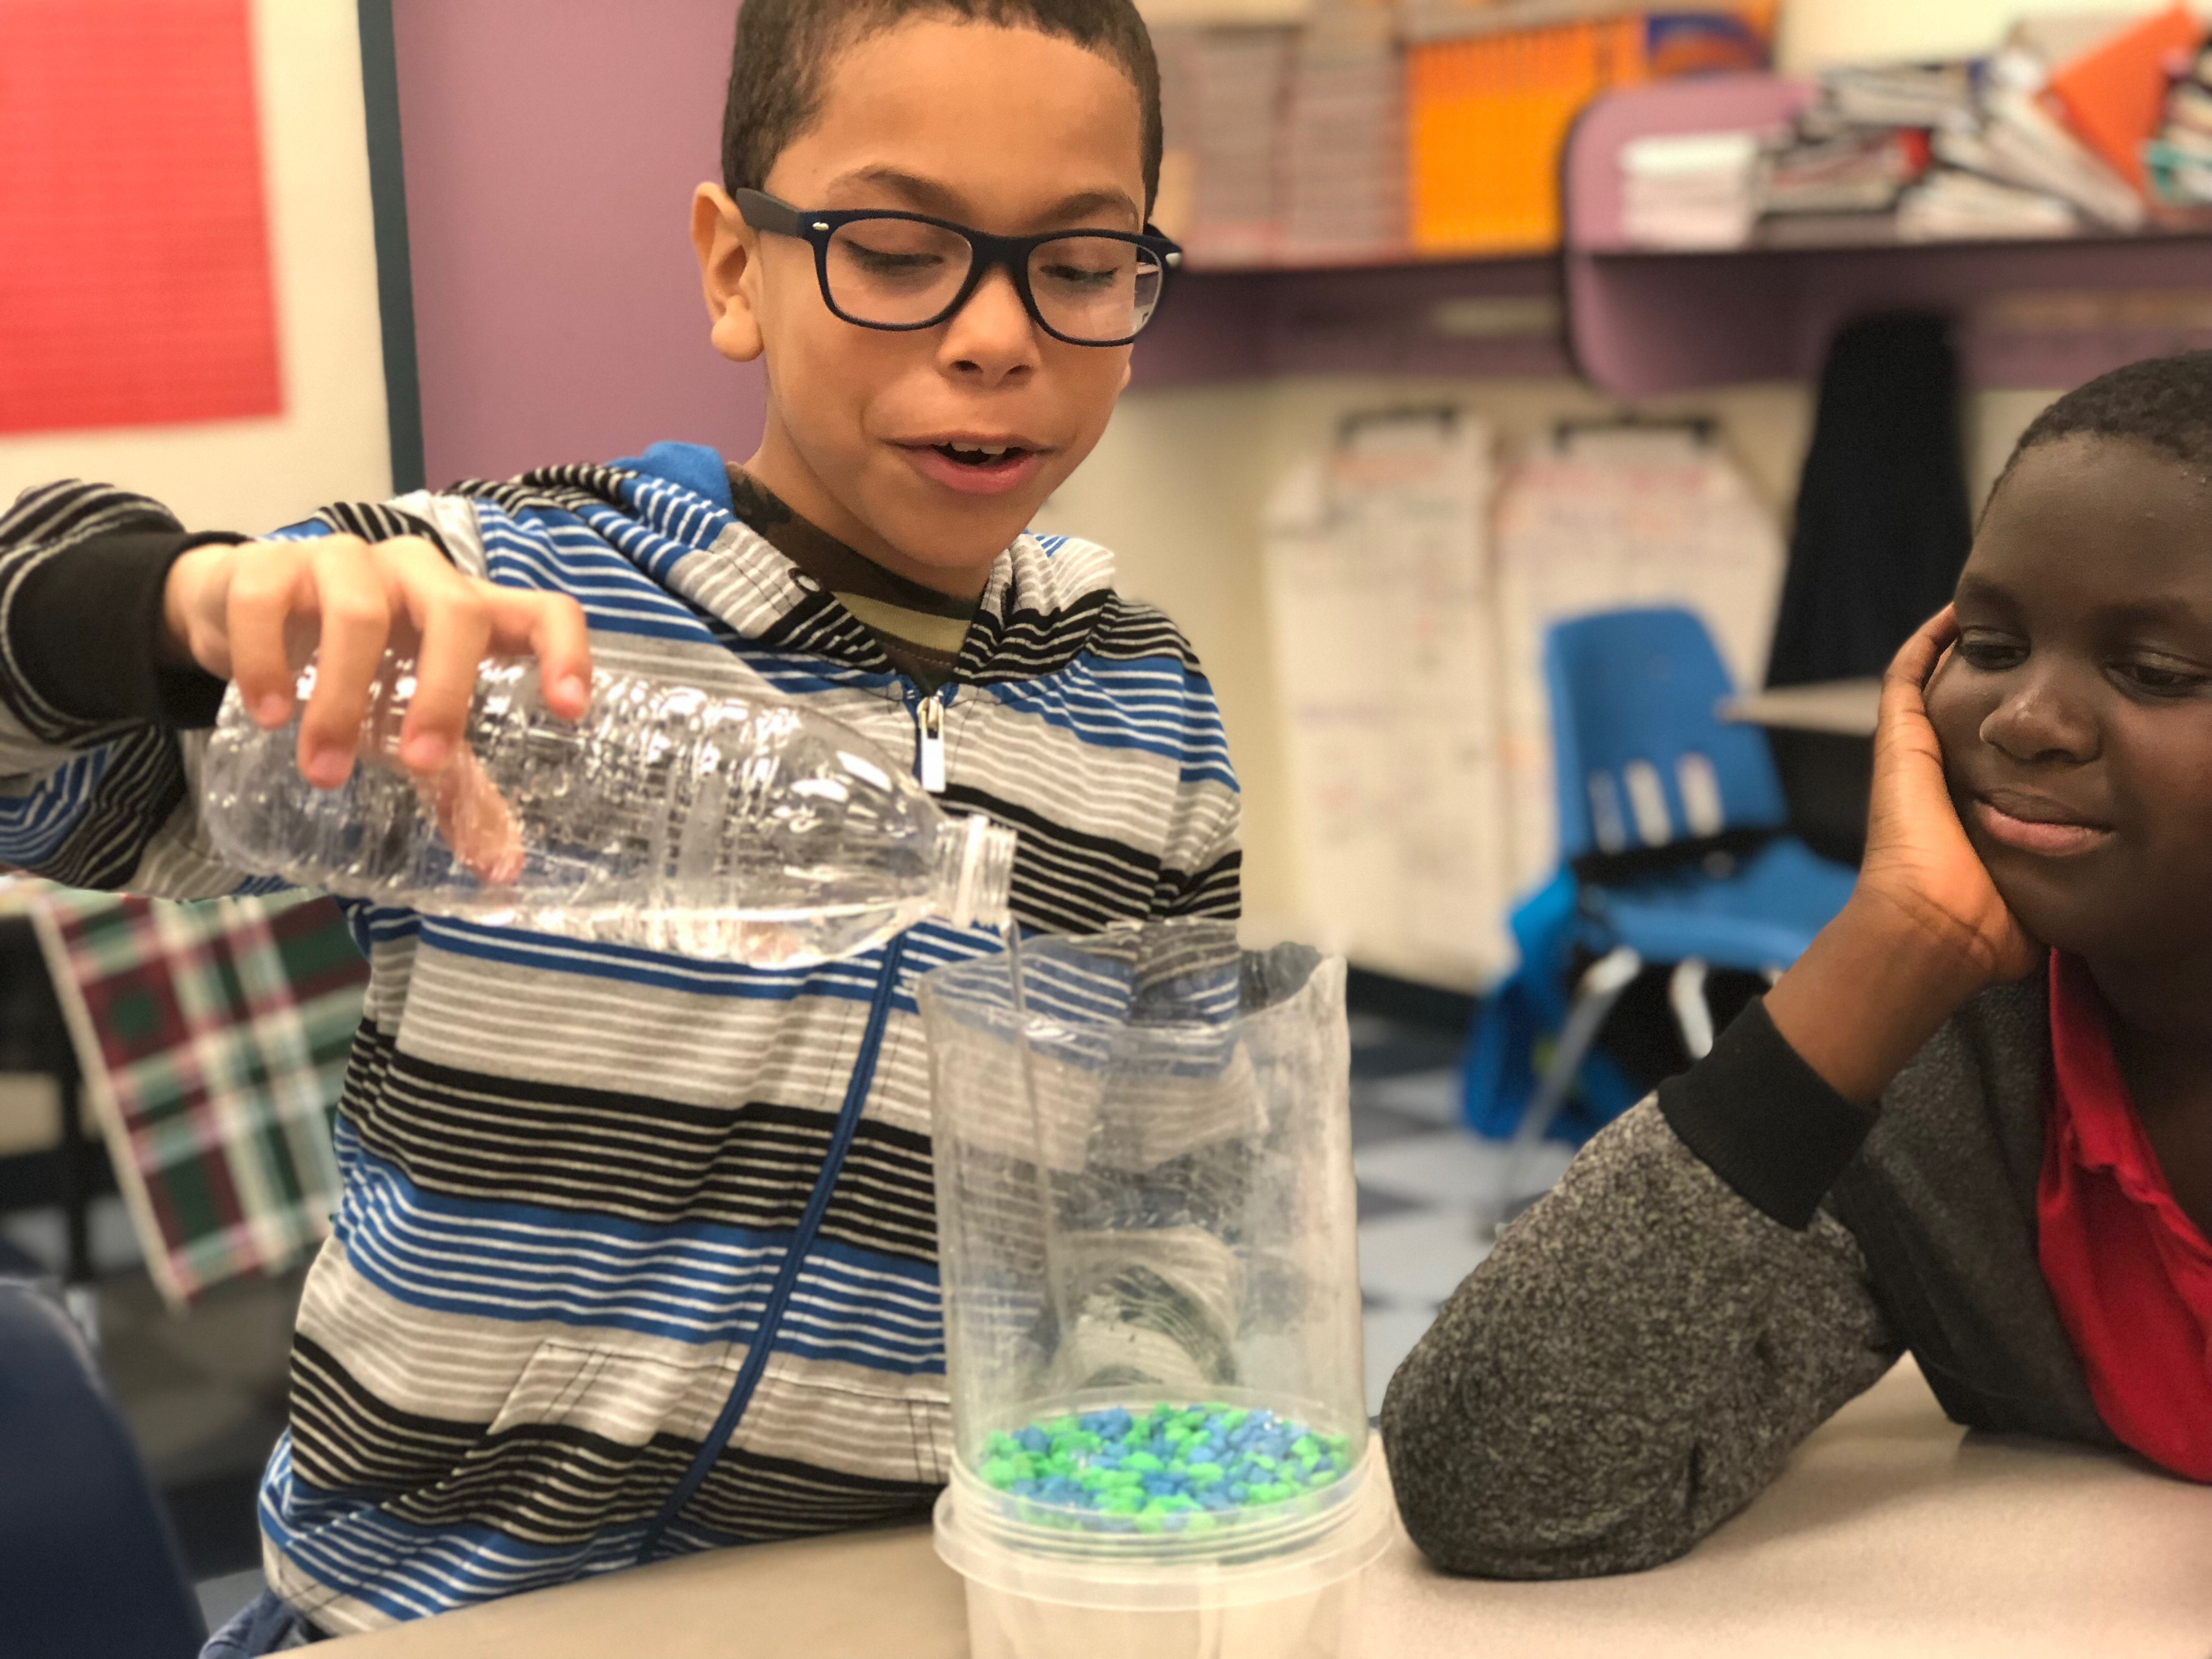 Student pouring water into his water filtration system